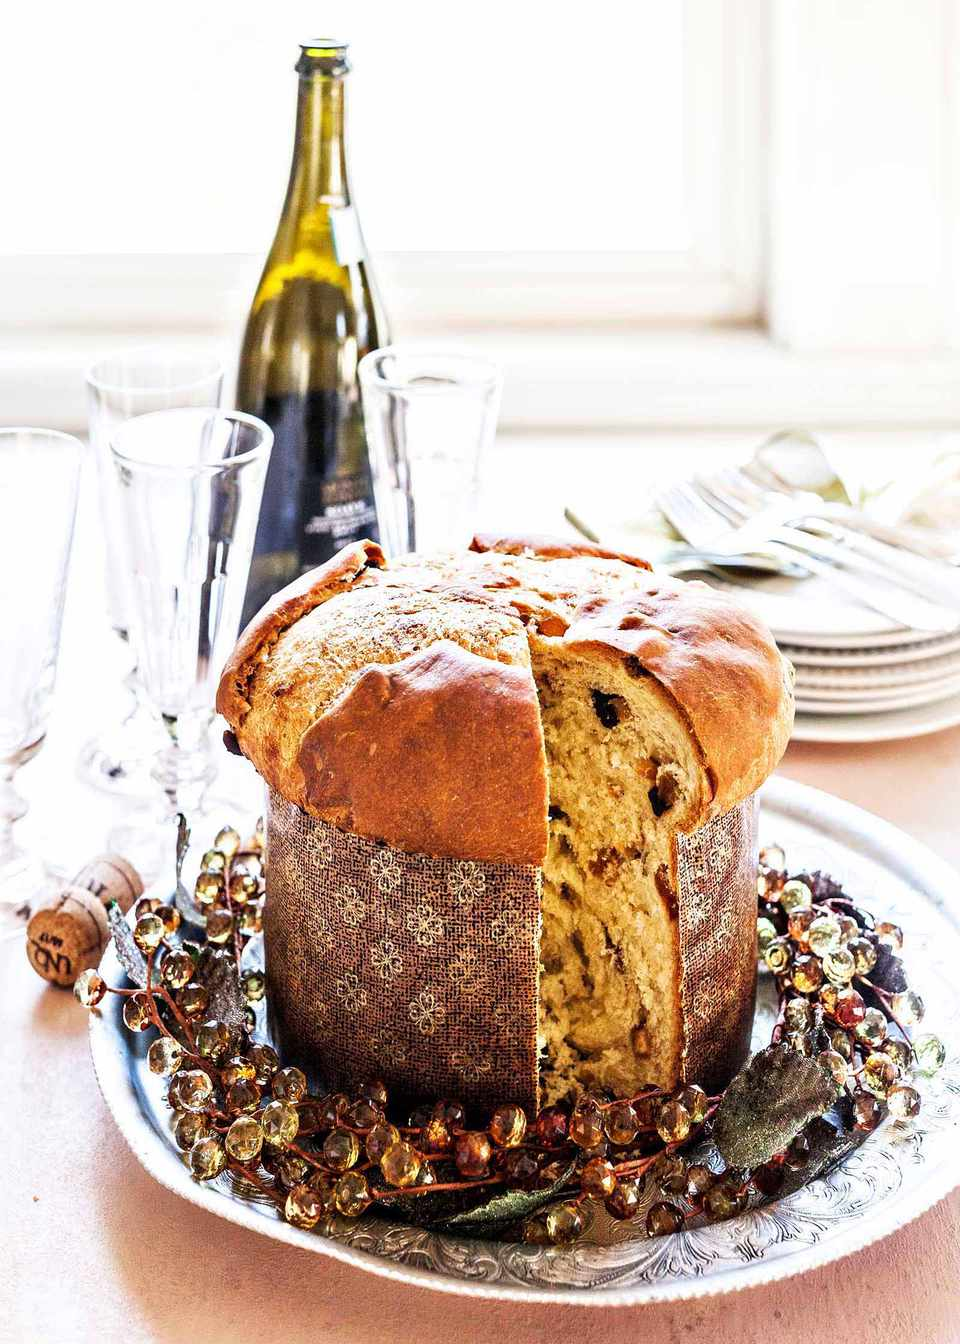 A loaf of homemade panettone in a paper mold with a slice cut out with a bottle of wine, and glasses in the background.